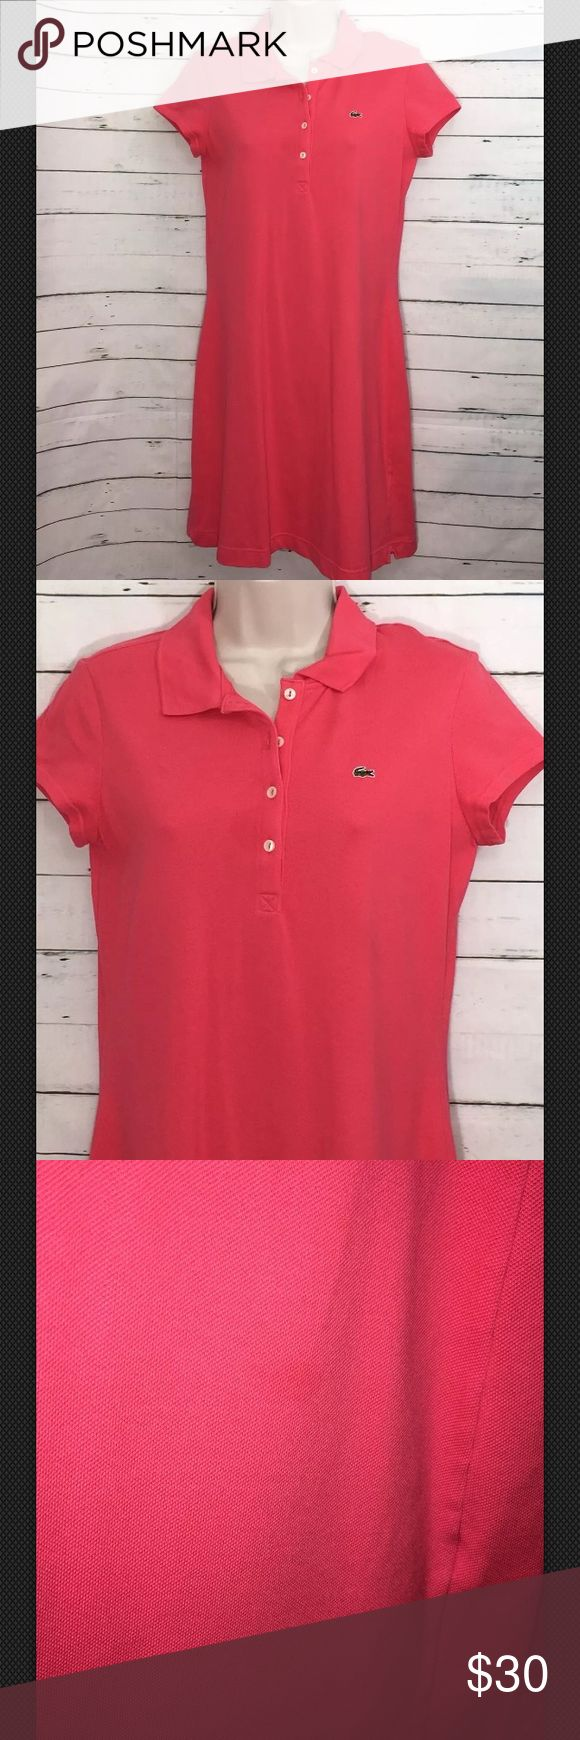 "Womens Lacoste Polo Short Sleeve Dress Womens Lacoste Shirt Dress Size 42 Coral Polo Short Sleeve Measurements  Bust 17.5""  Shoulder 14.5""  Length 35""   Good condition. Dress has spot on inside of dress above the hem and light oil spot on front of dress. Light fading around collar Lacoste Dresses"